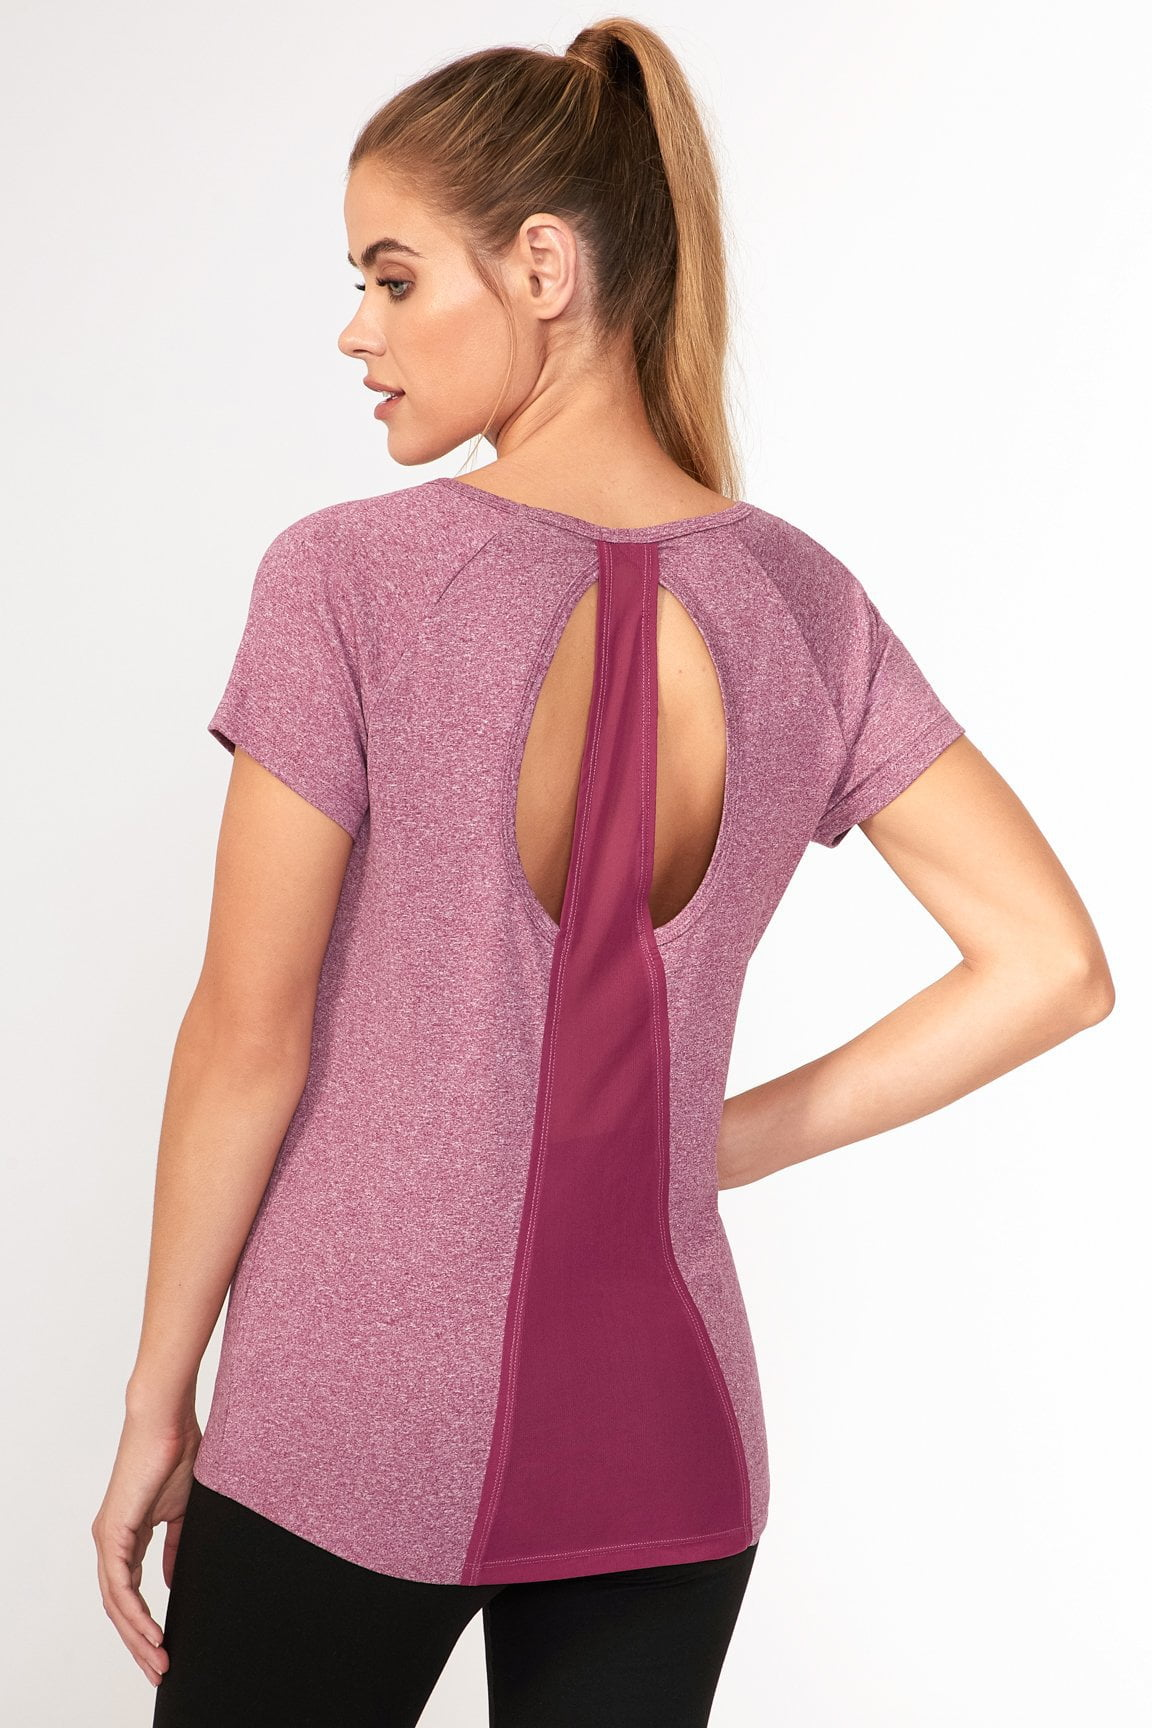 Contour Tee- Heather Magenta Purple